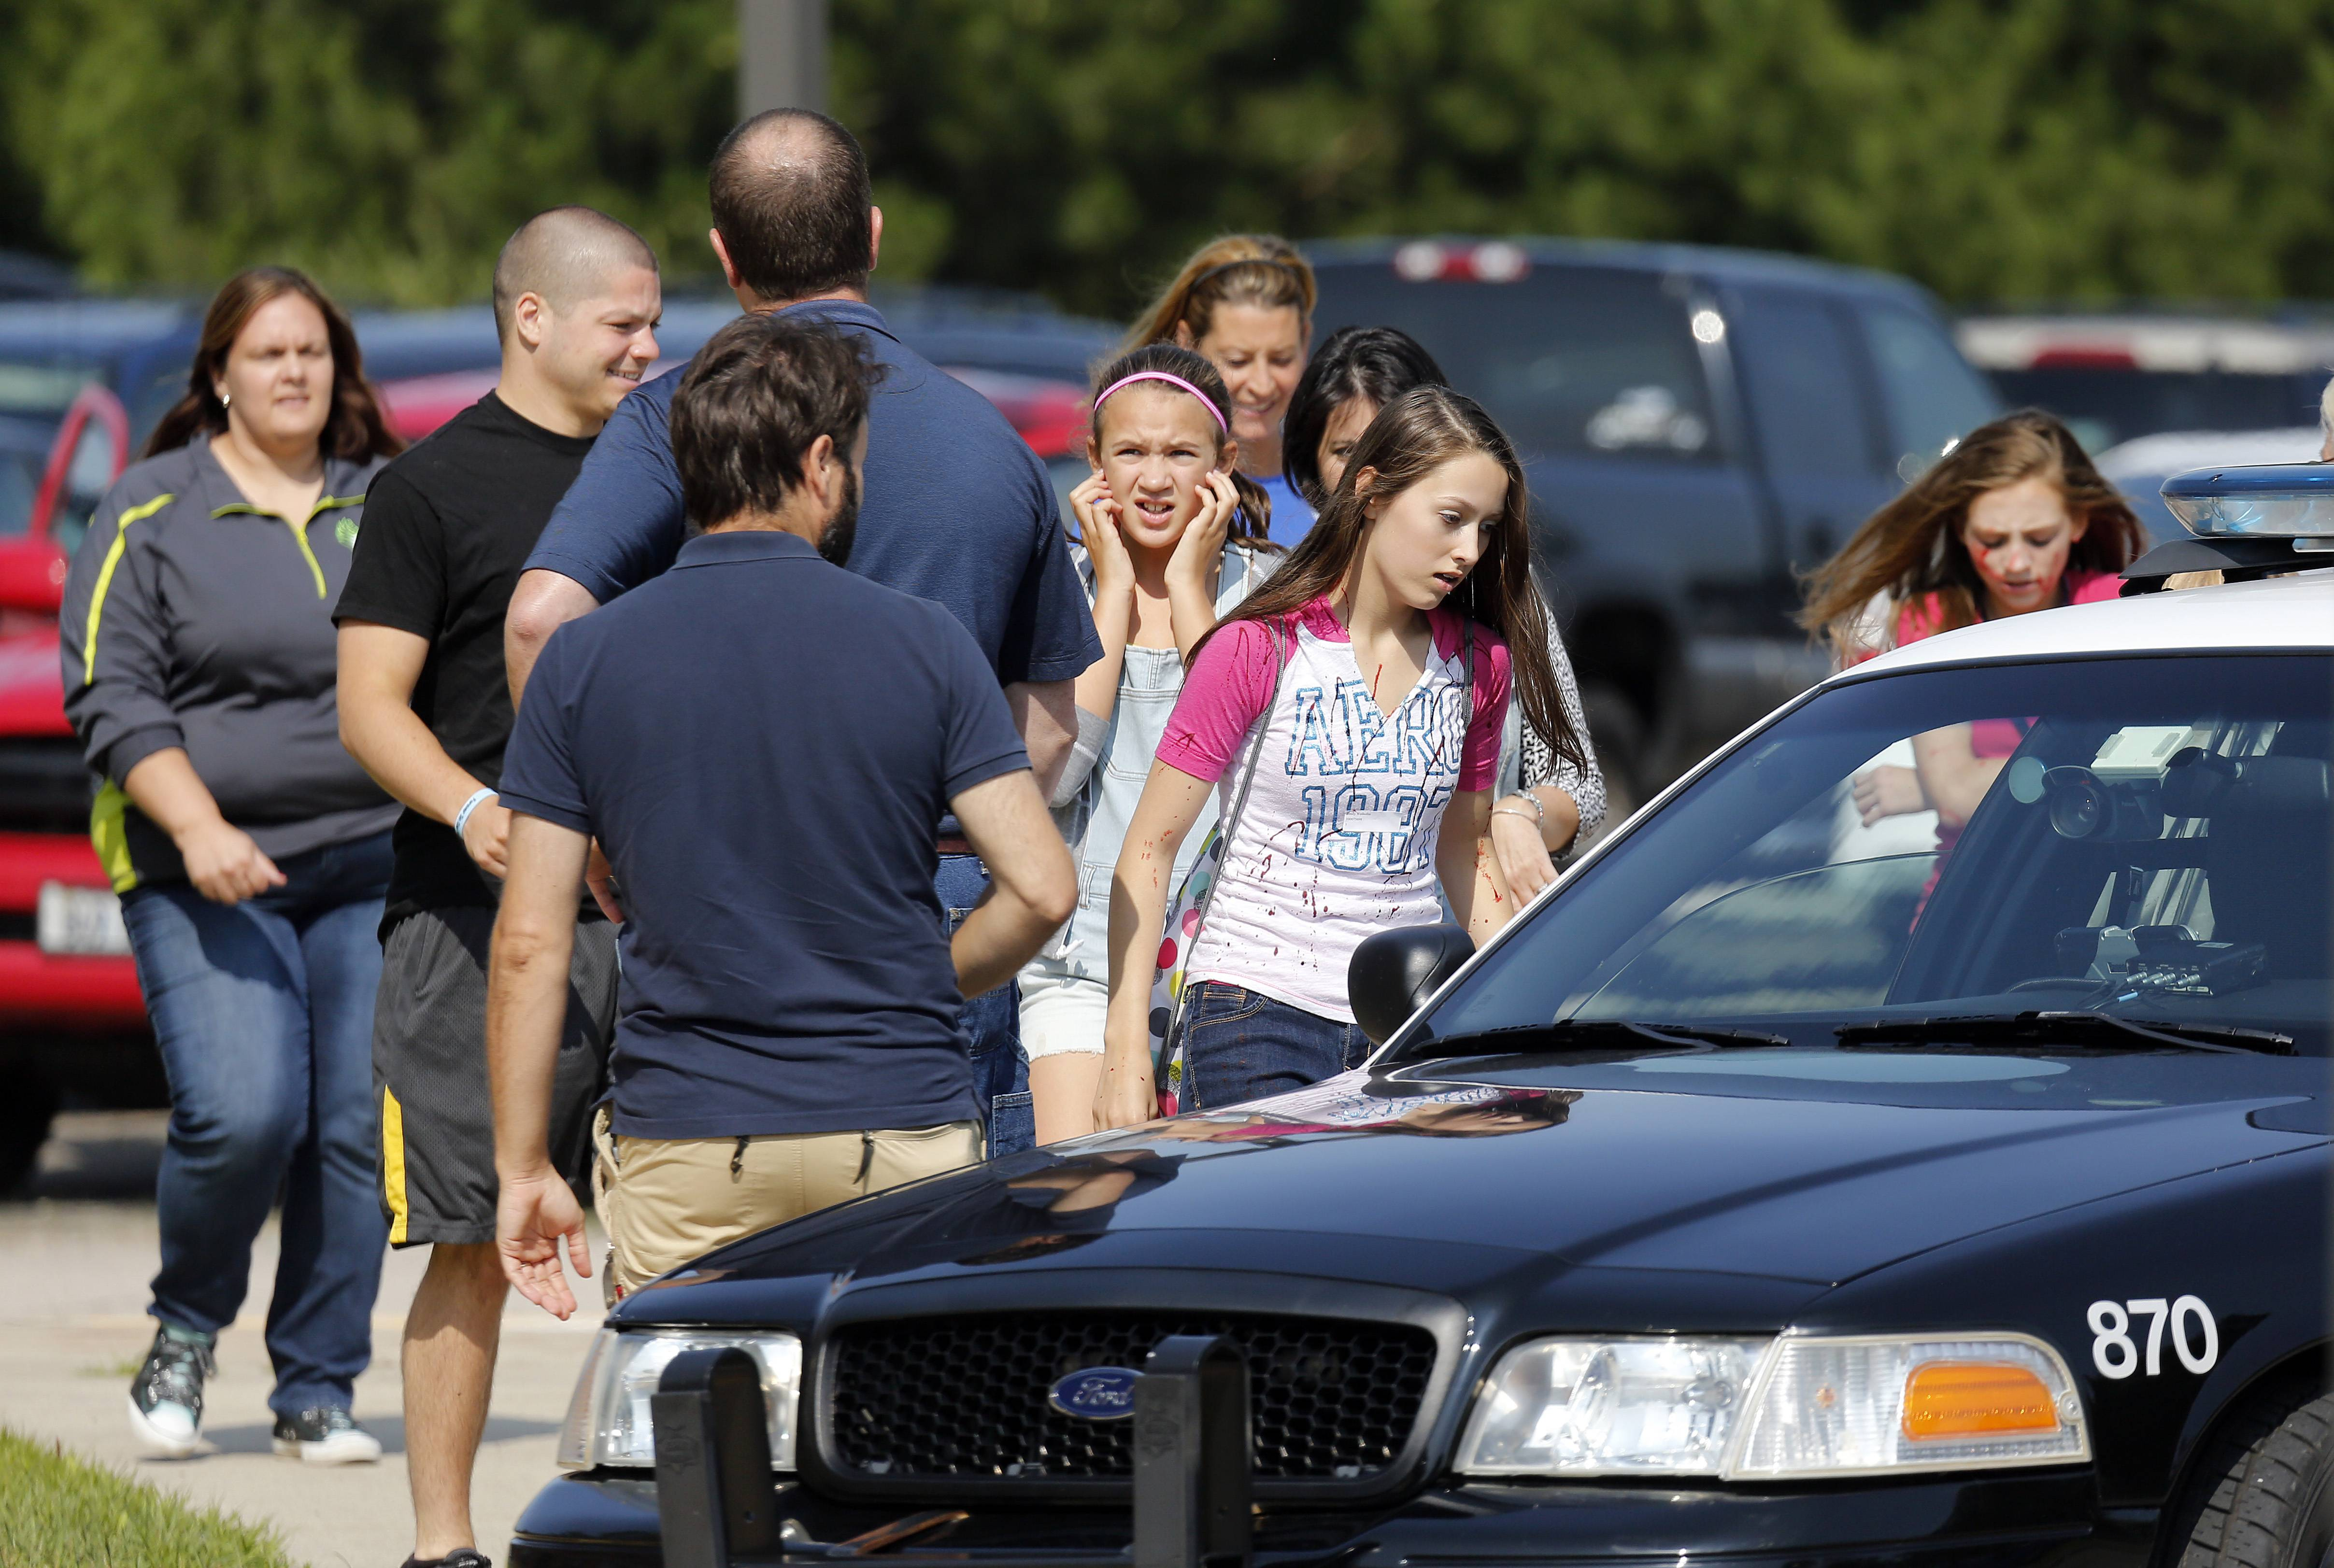 Fake victims are evacuated Thursday morning to the parking lot of Otter Creek Elementary School in Elgin. The training included a shooter who killed seven people and injured 47.